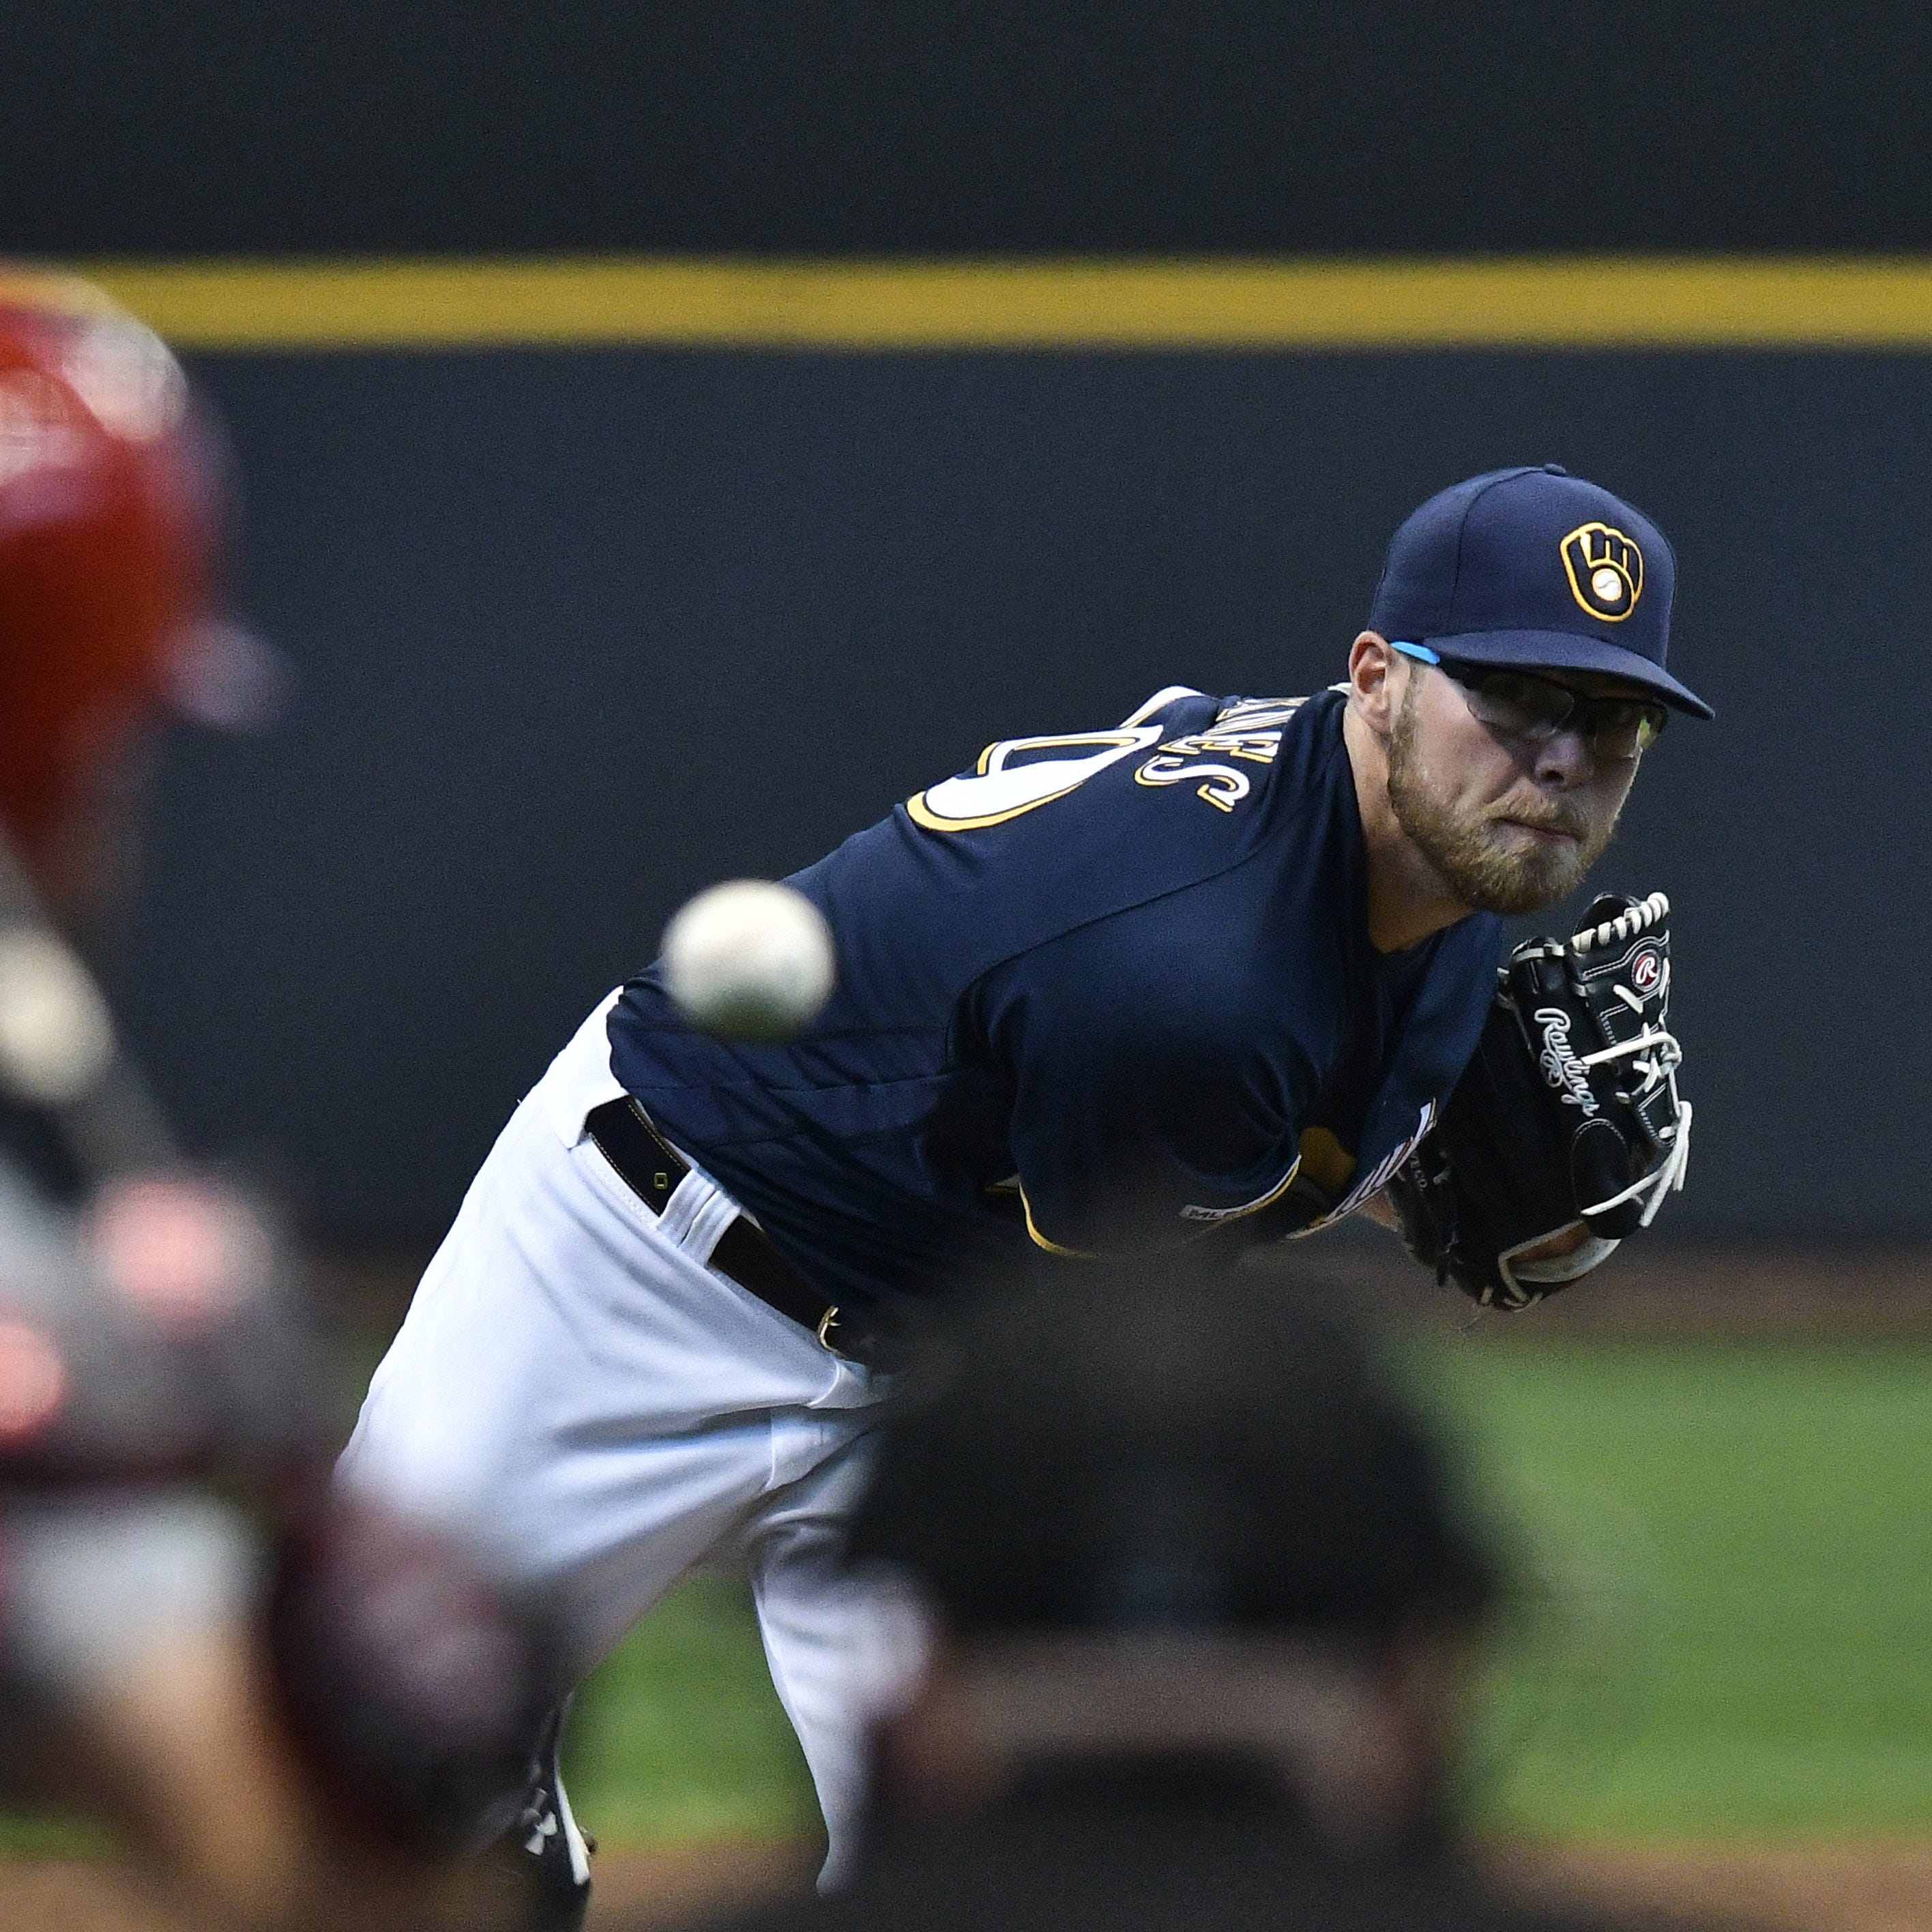 After another rough outing, Corbin Burnes could be headed for timeout from the Brewers rotation